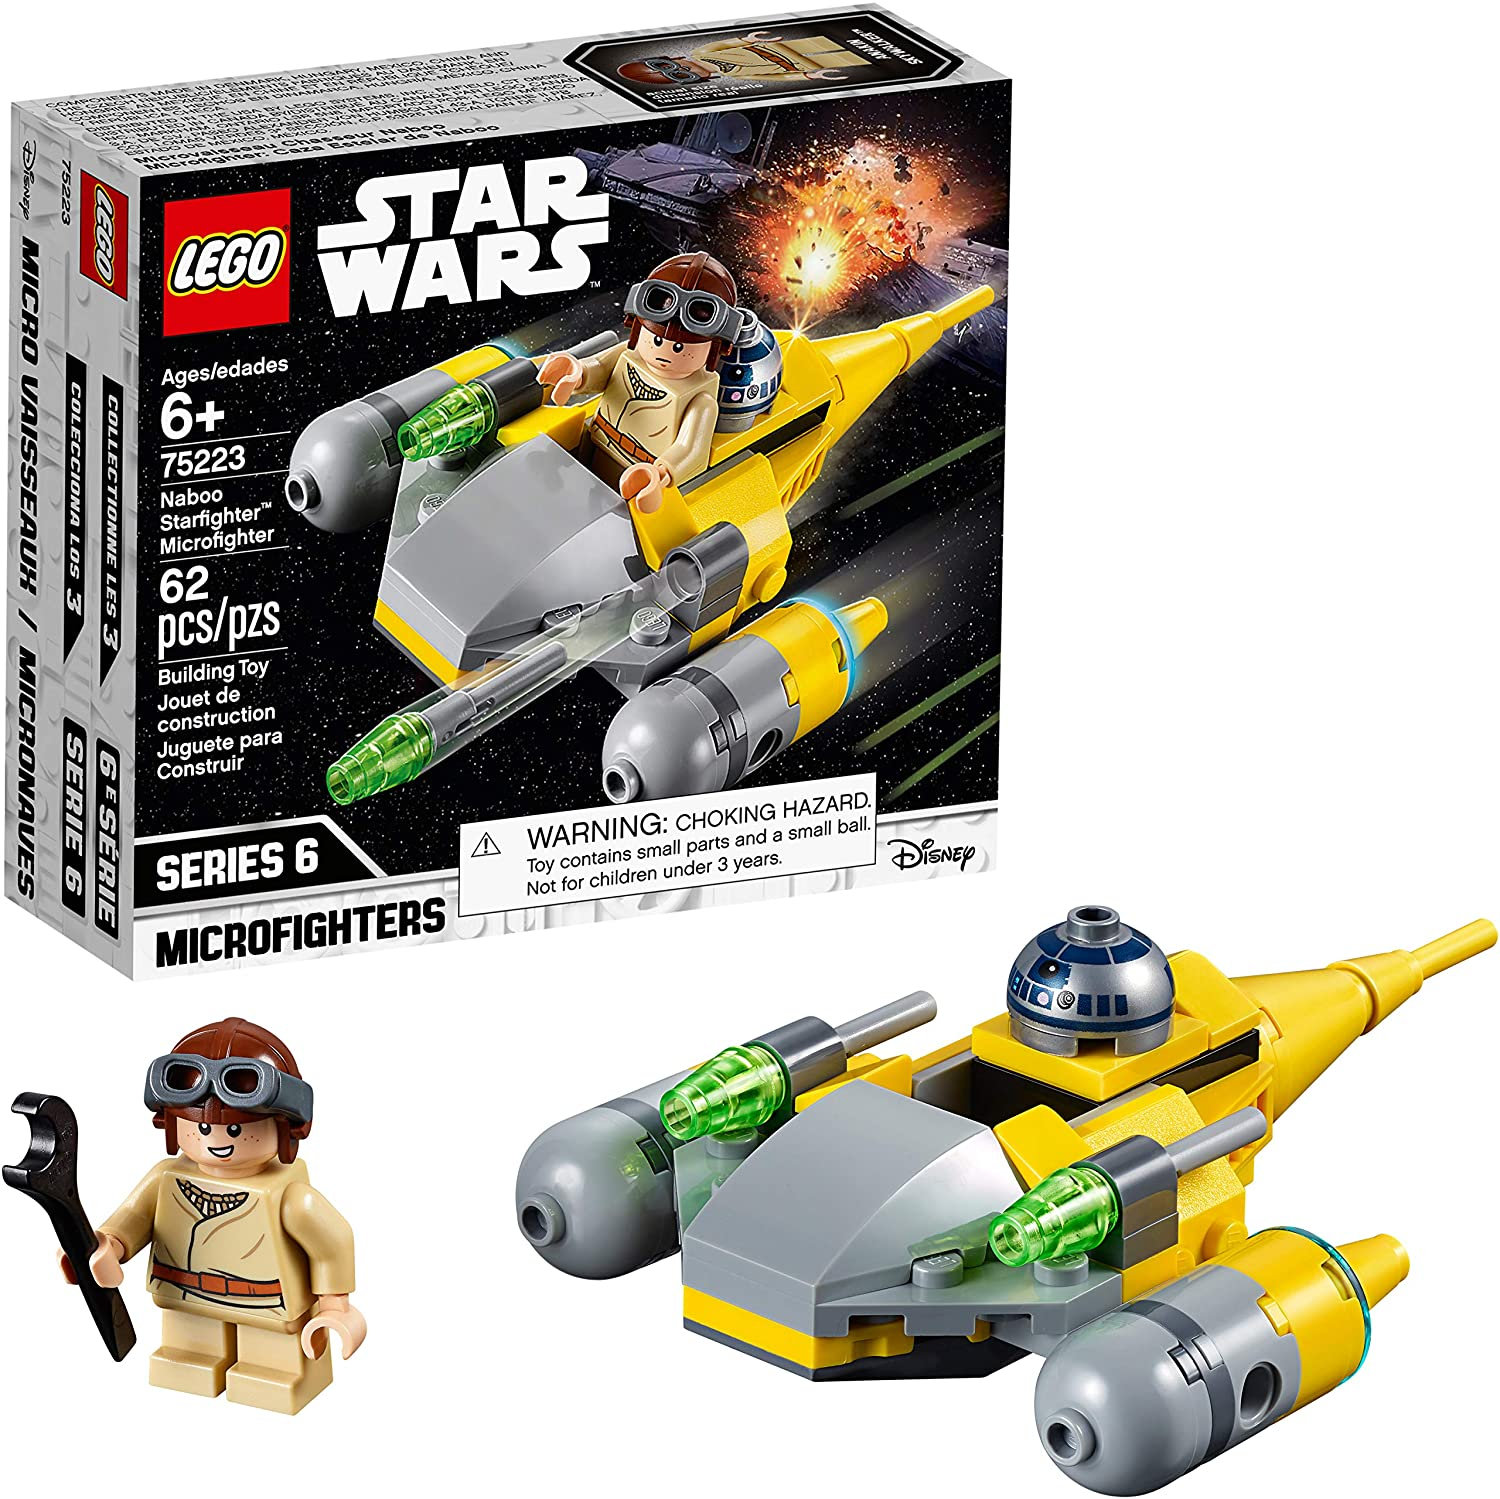 Amazon Com Lego Star Wars Naboo Starfighter Microfighter 75223 Building Kit 62 Pieces Toys Games